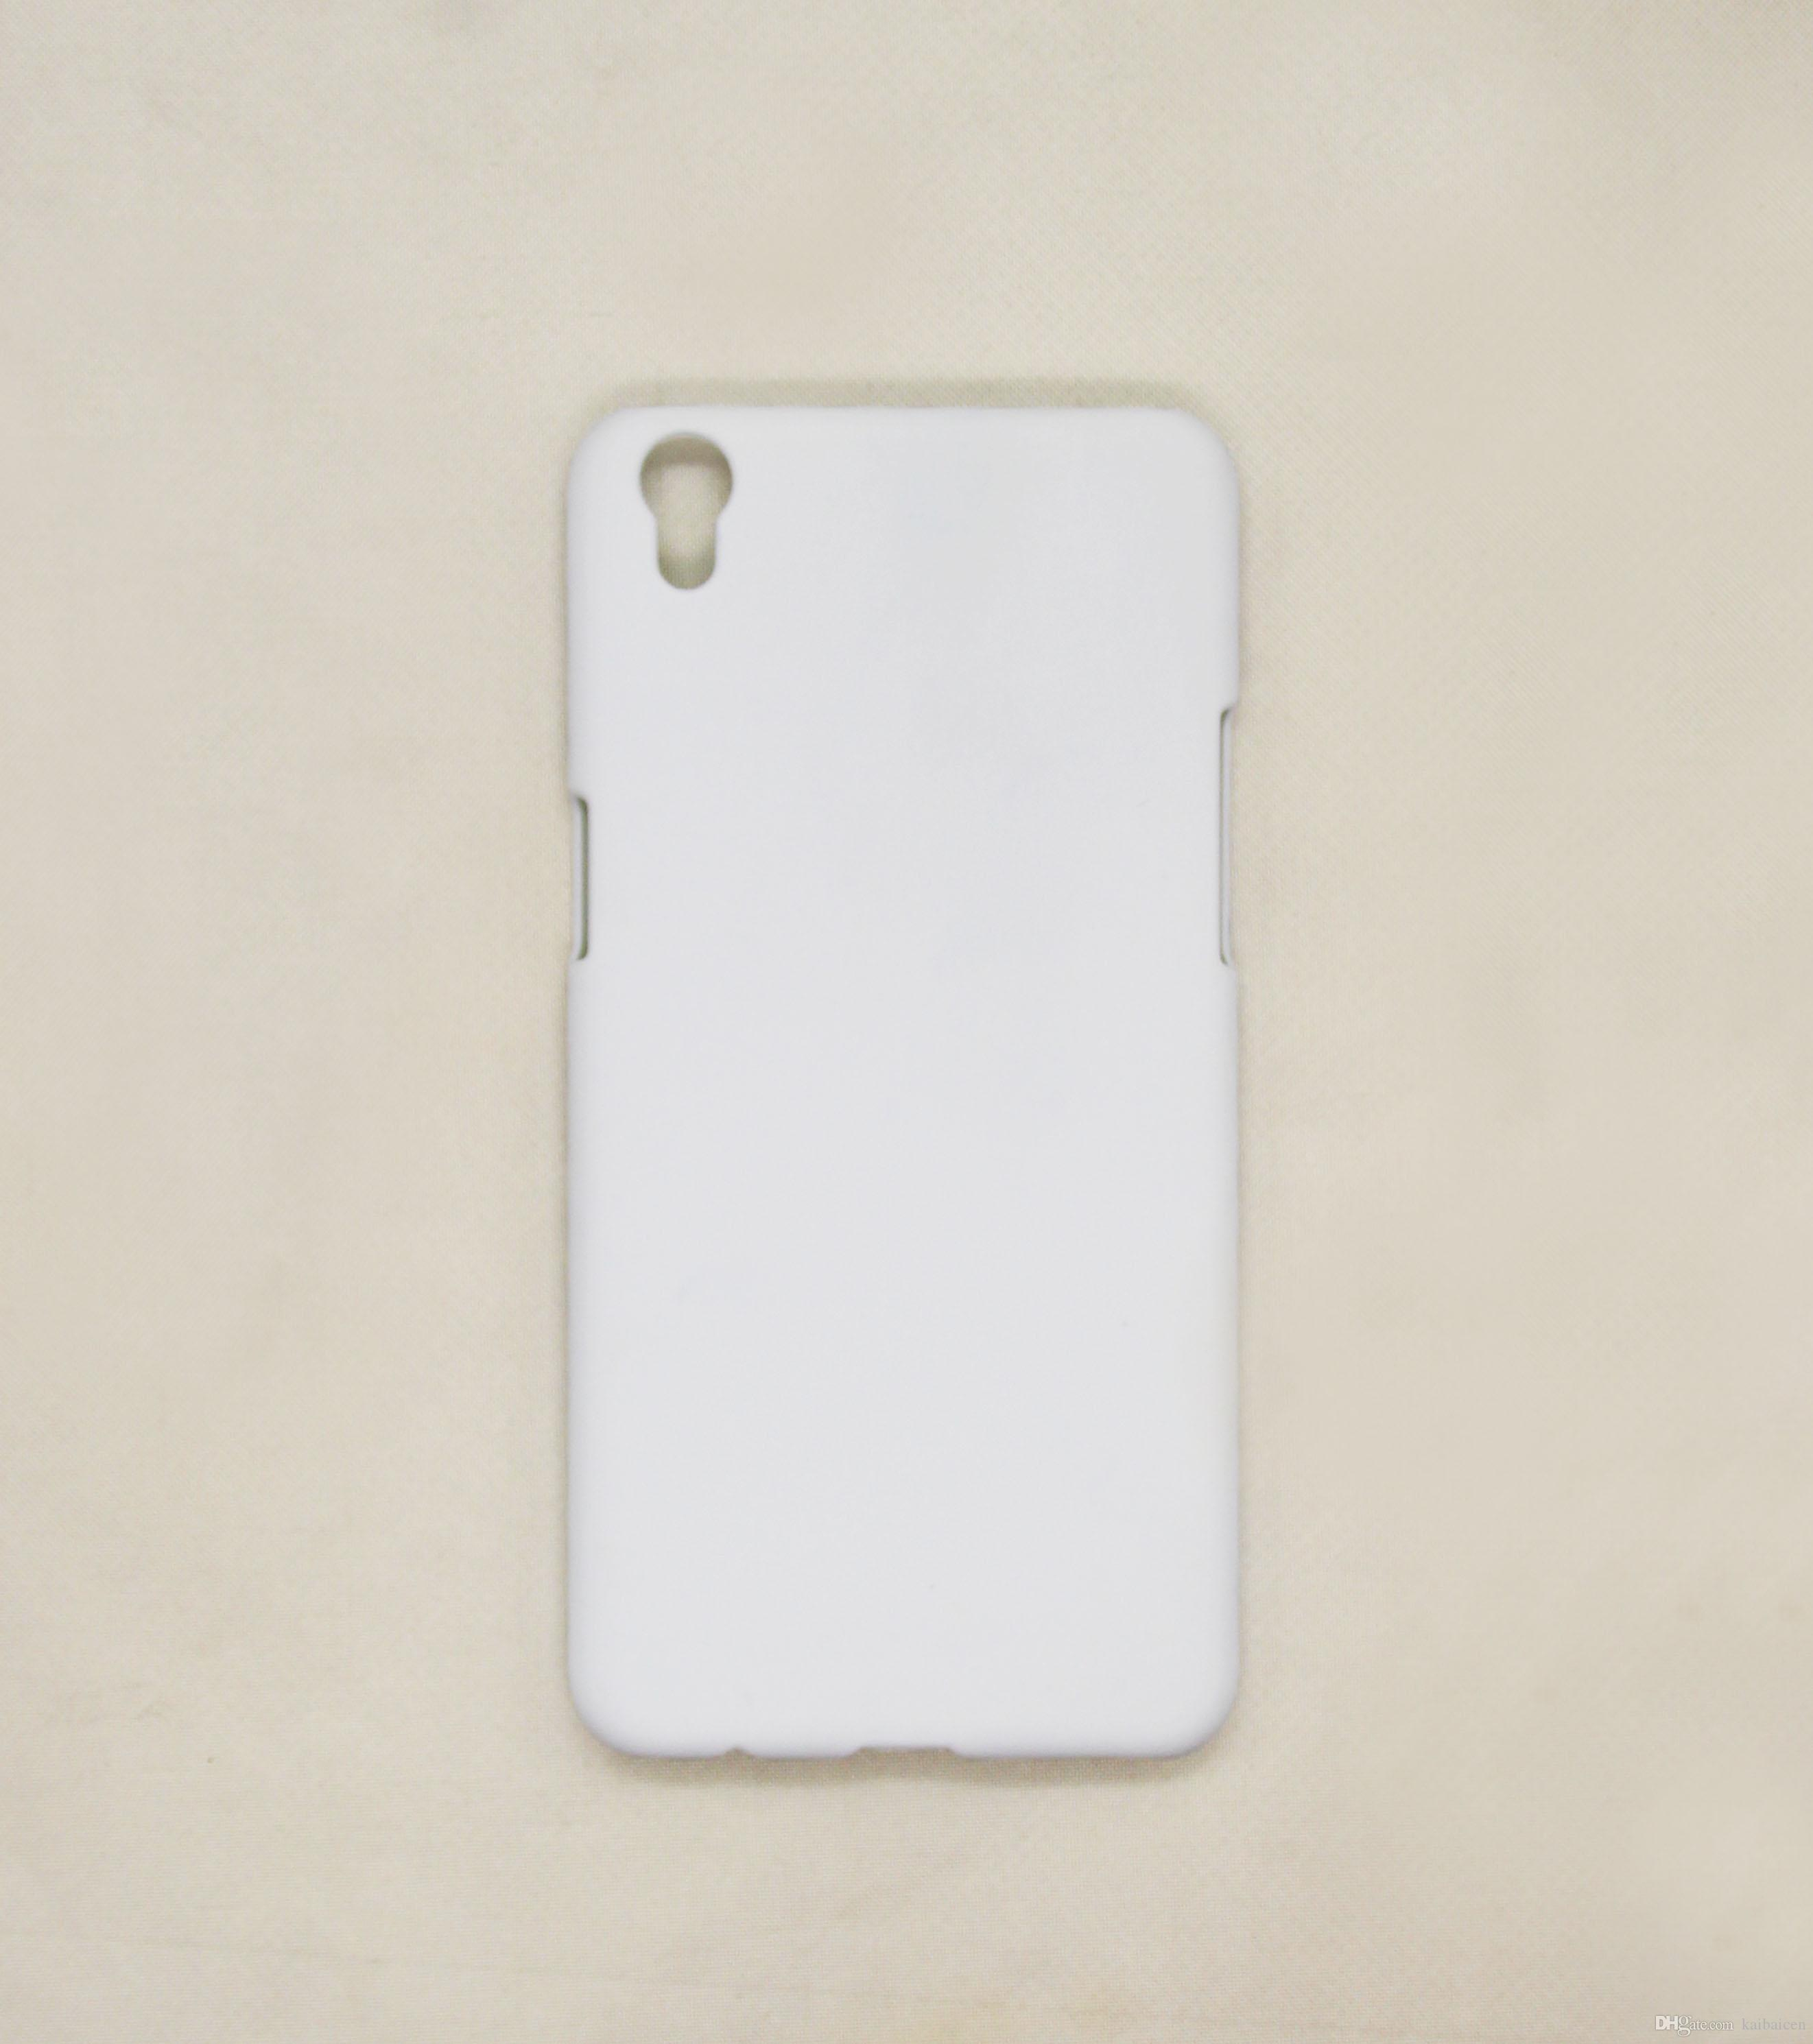 For OPPO R7/R7S/A33/A35/A37/R9/R9 Plus/A59/A57 Sublimation 3D Phone Mobile Glossy Matte Case Heat press phone Cover